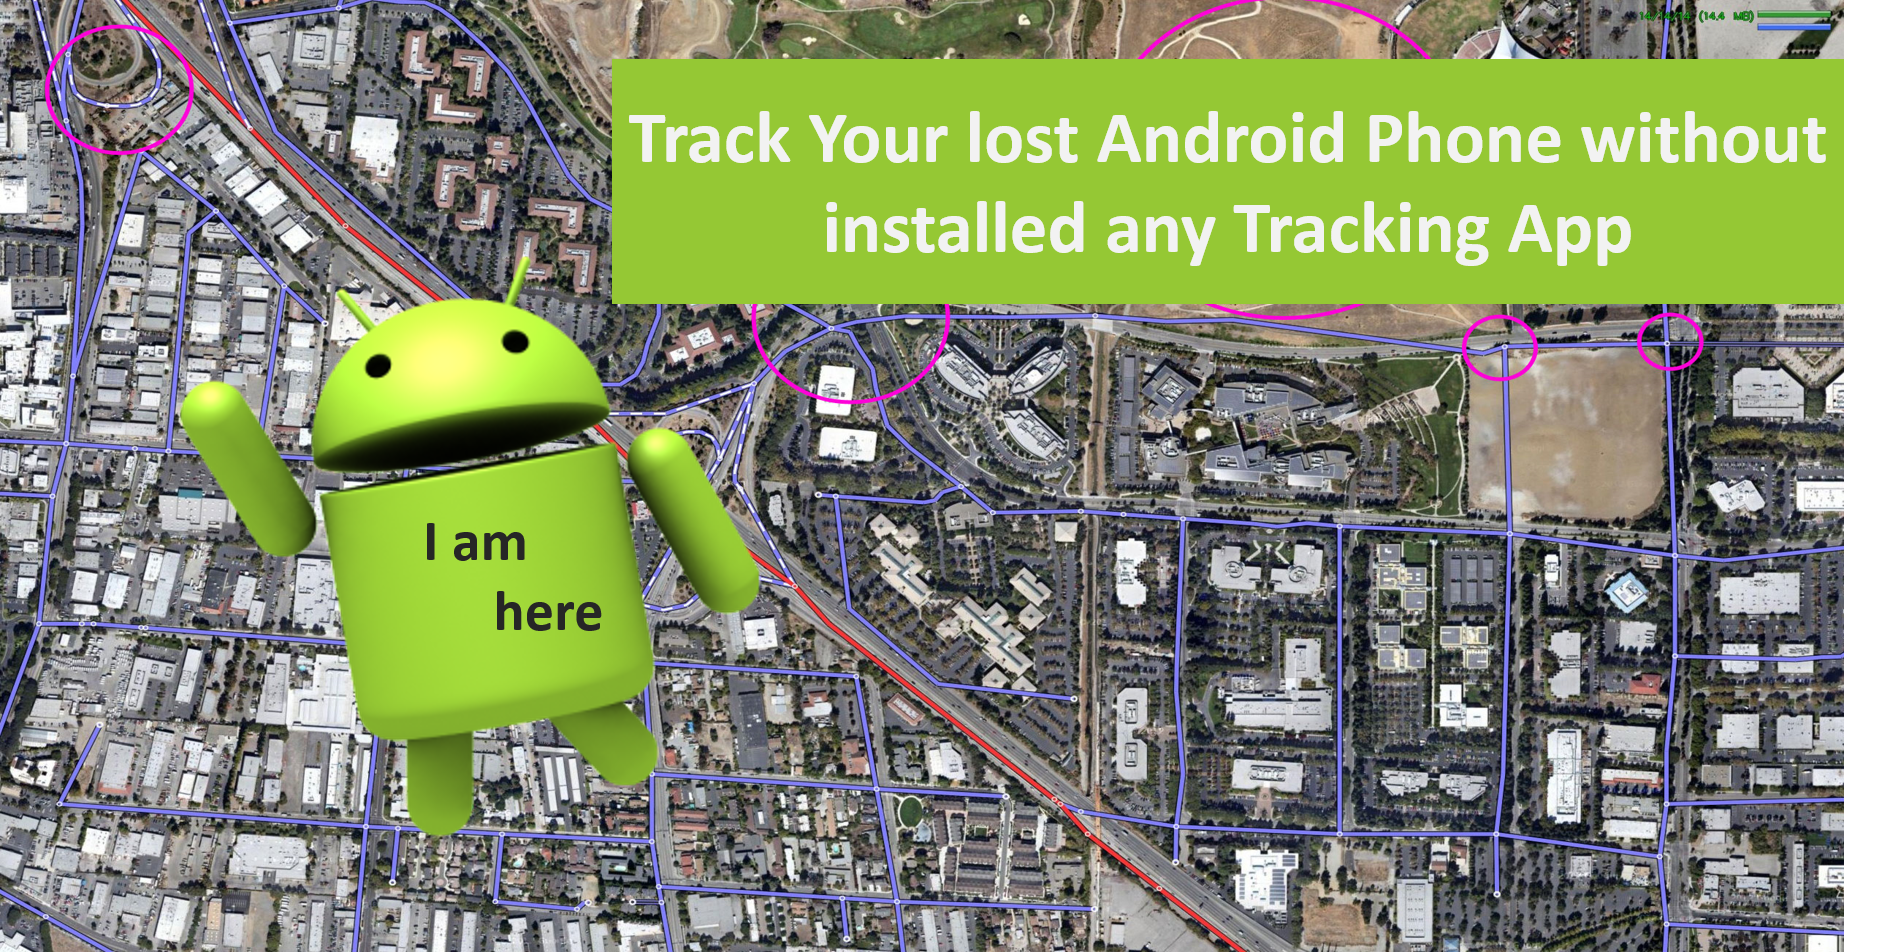 IMEI Number Tracking,Track Mobile Phone by IMEI Number in USA